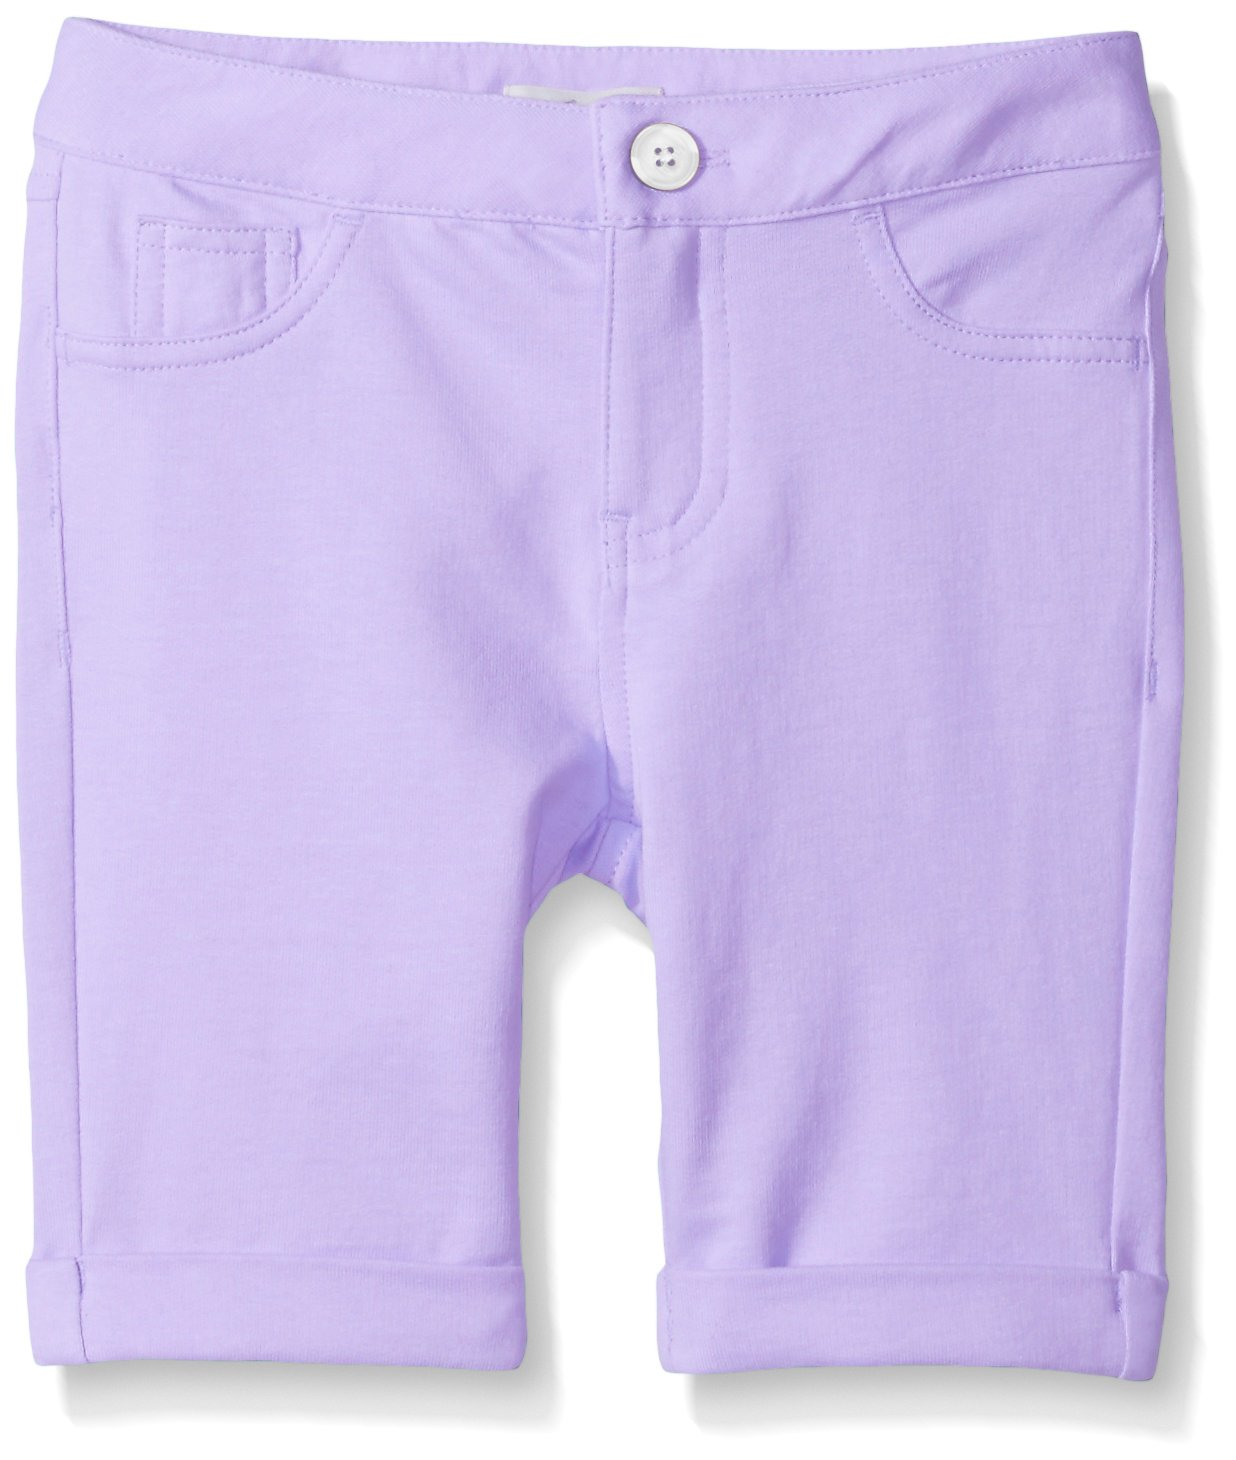 Scout + Ro Big Girls' Five-Pocket Knit Bermuda Short, Lavender Sunset, 10